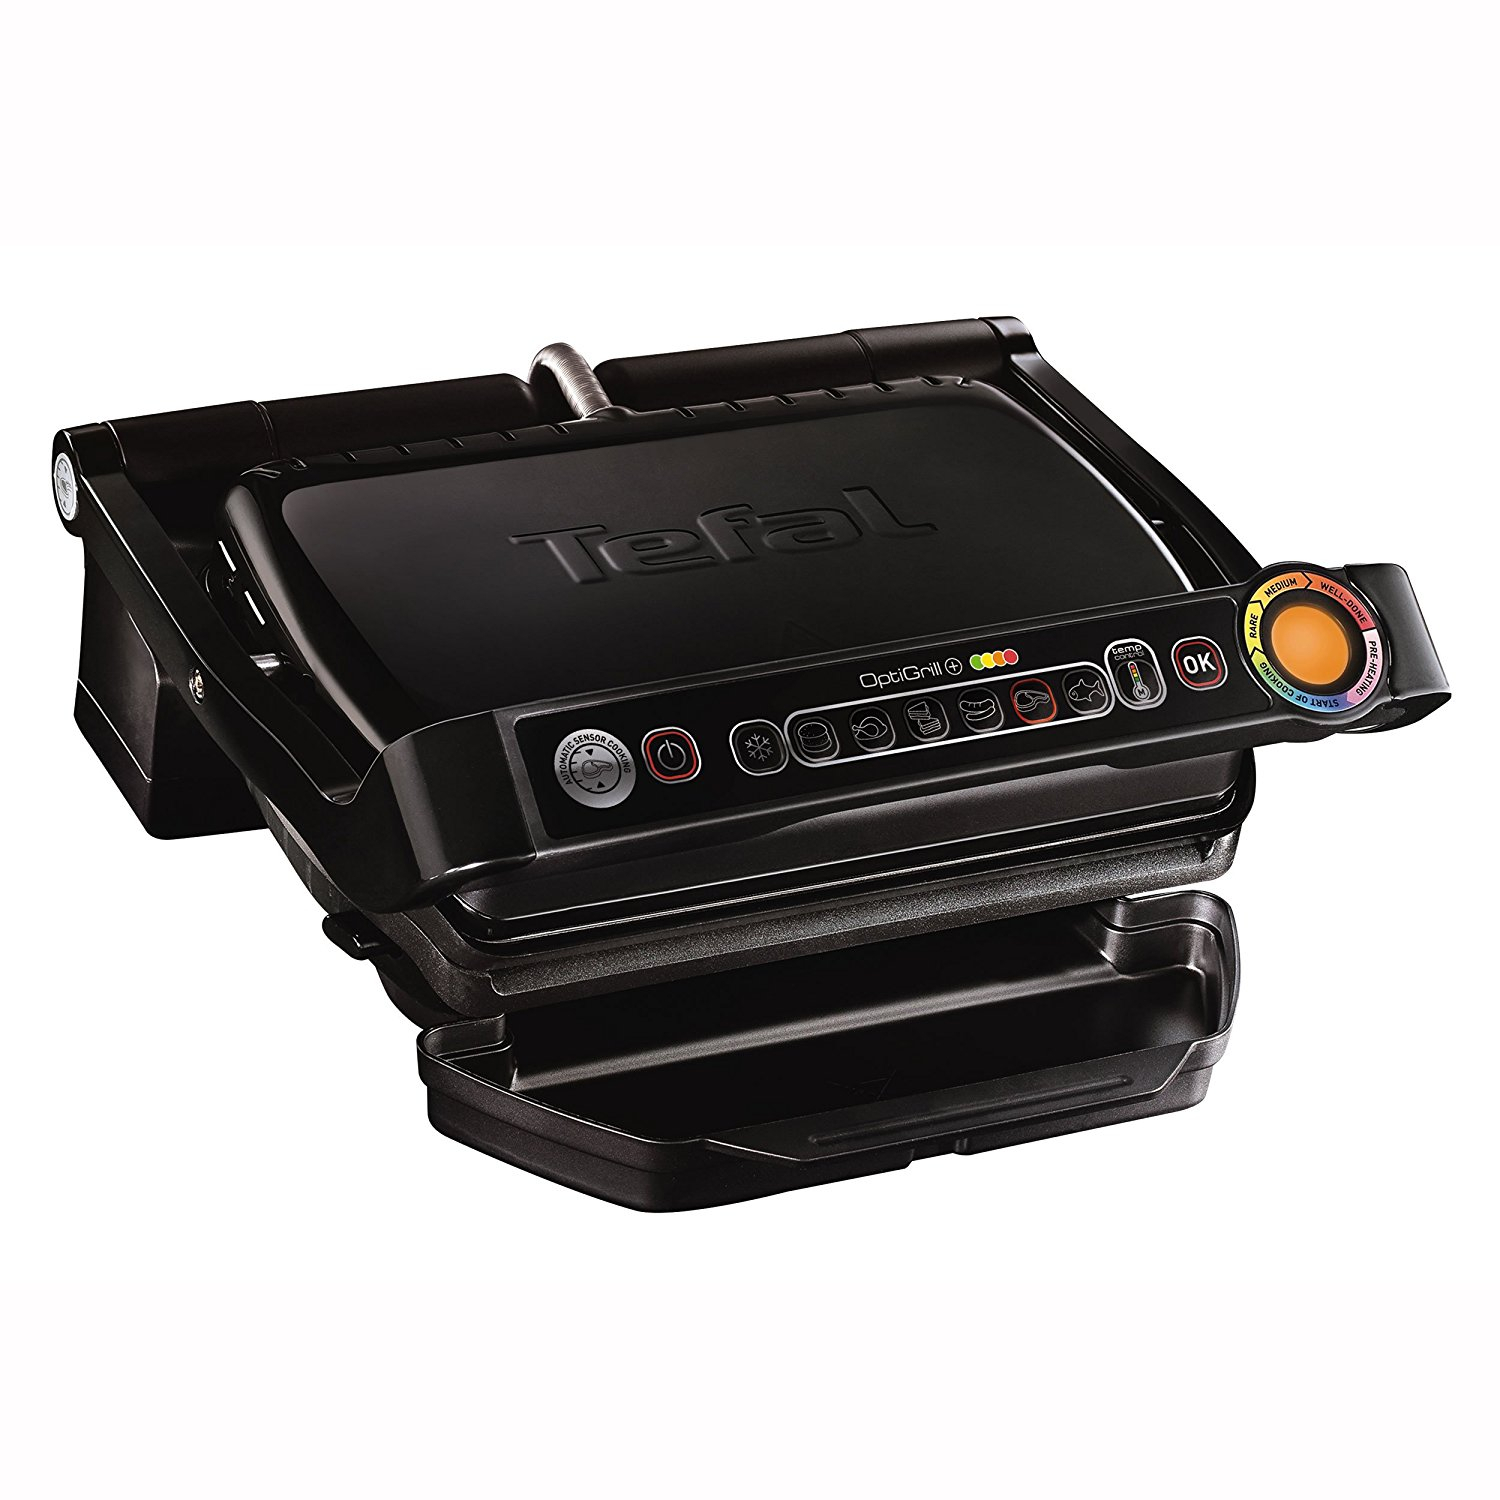 Tefal GC 7148 Optigrill